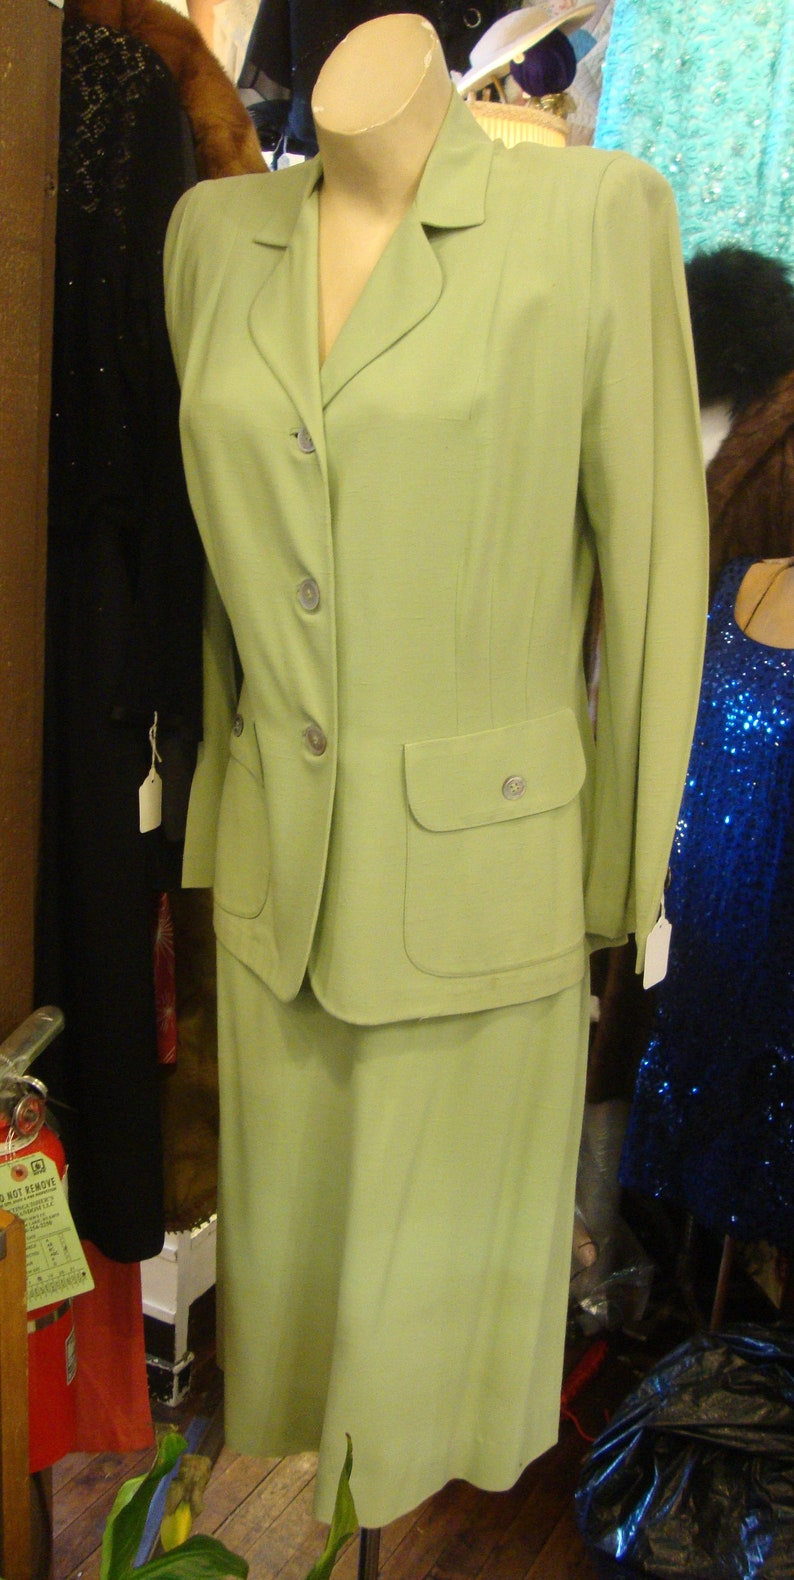 Vintage 1940/'s 1950/'s Spring Green Rayon 2 Piece Suit with Pearl ButtonsSize Medium